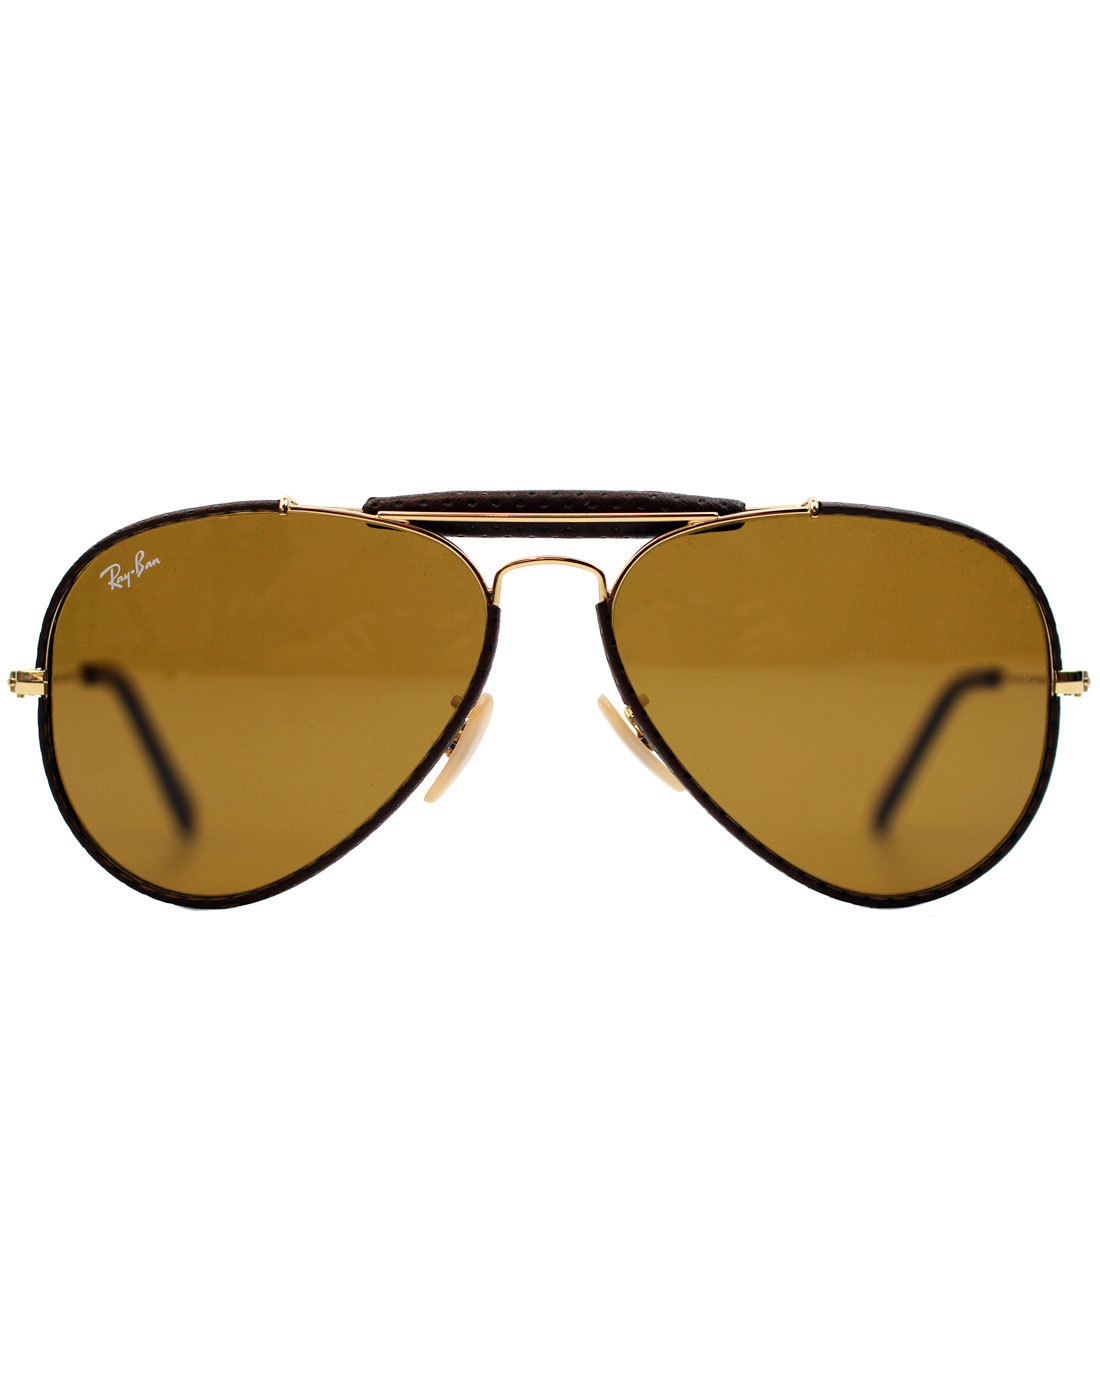 71078232d8 RAY-BAN Outdoorsman Craft Retro 70s Leather Sunglasses in Brown